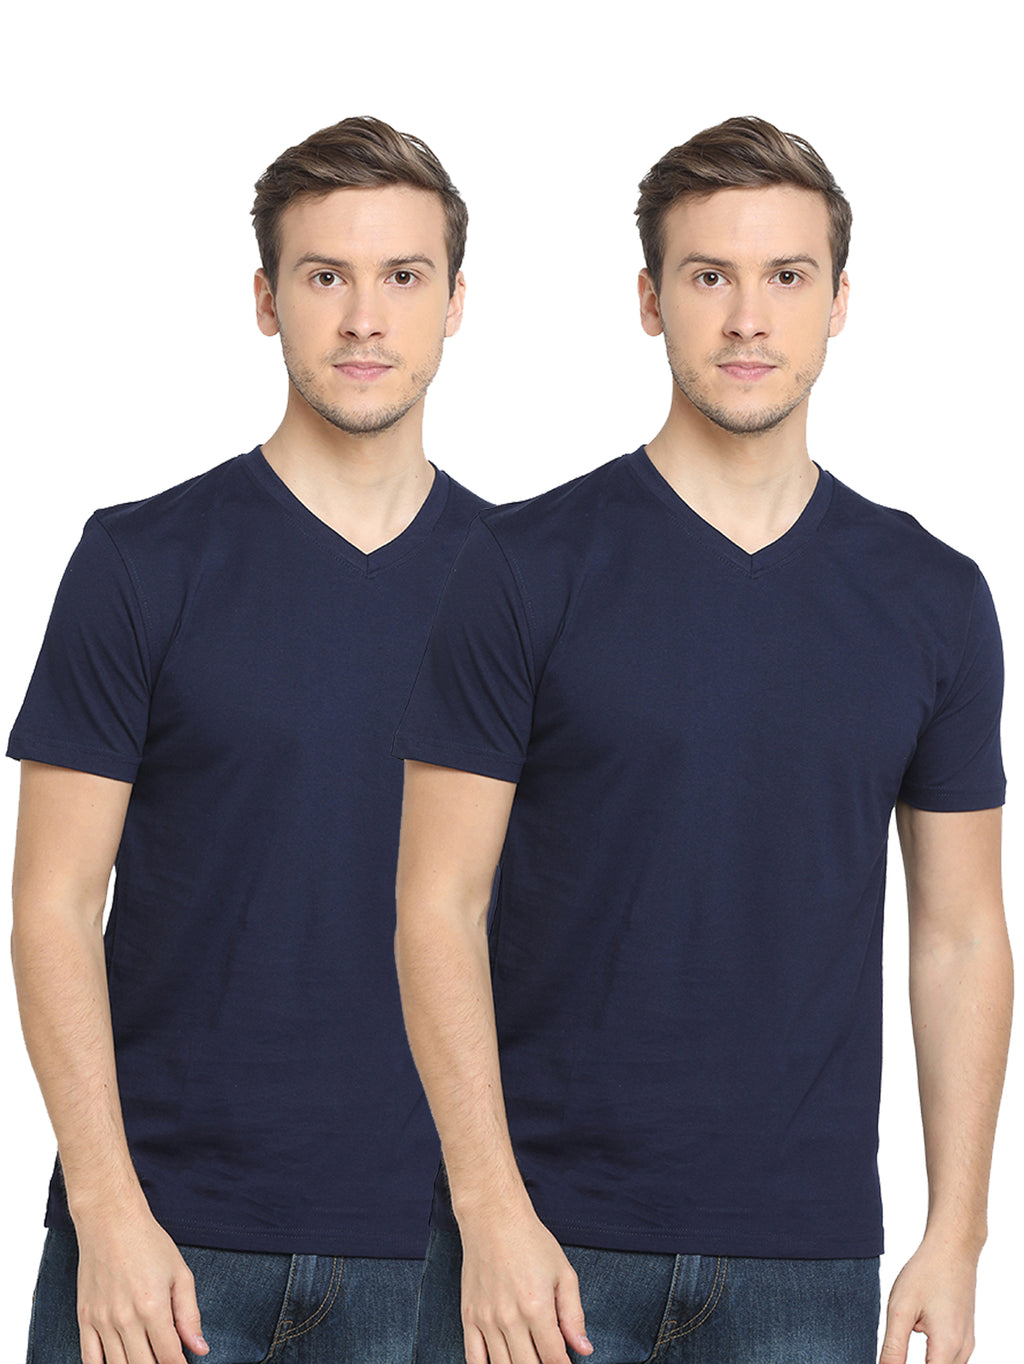 Rock Hooper-Men's Half Sleeve Cotton Plain White/Black/Grey/Navy Blue V-Neck T-Shirt(Pack of 2)